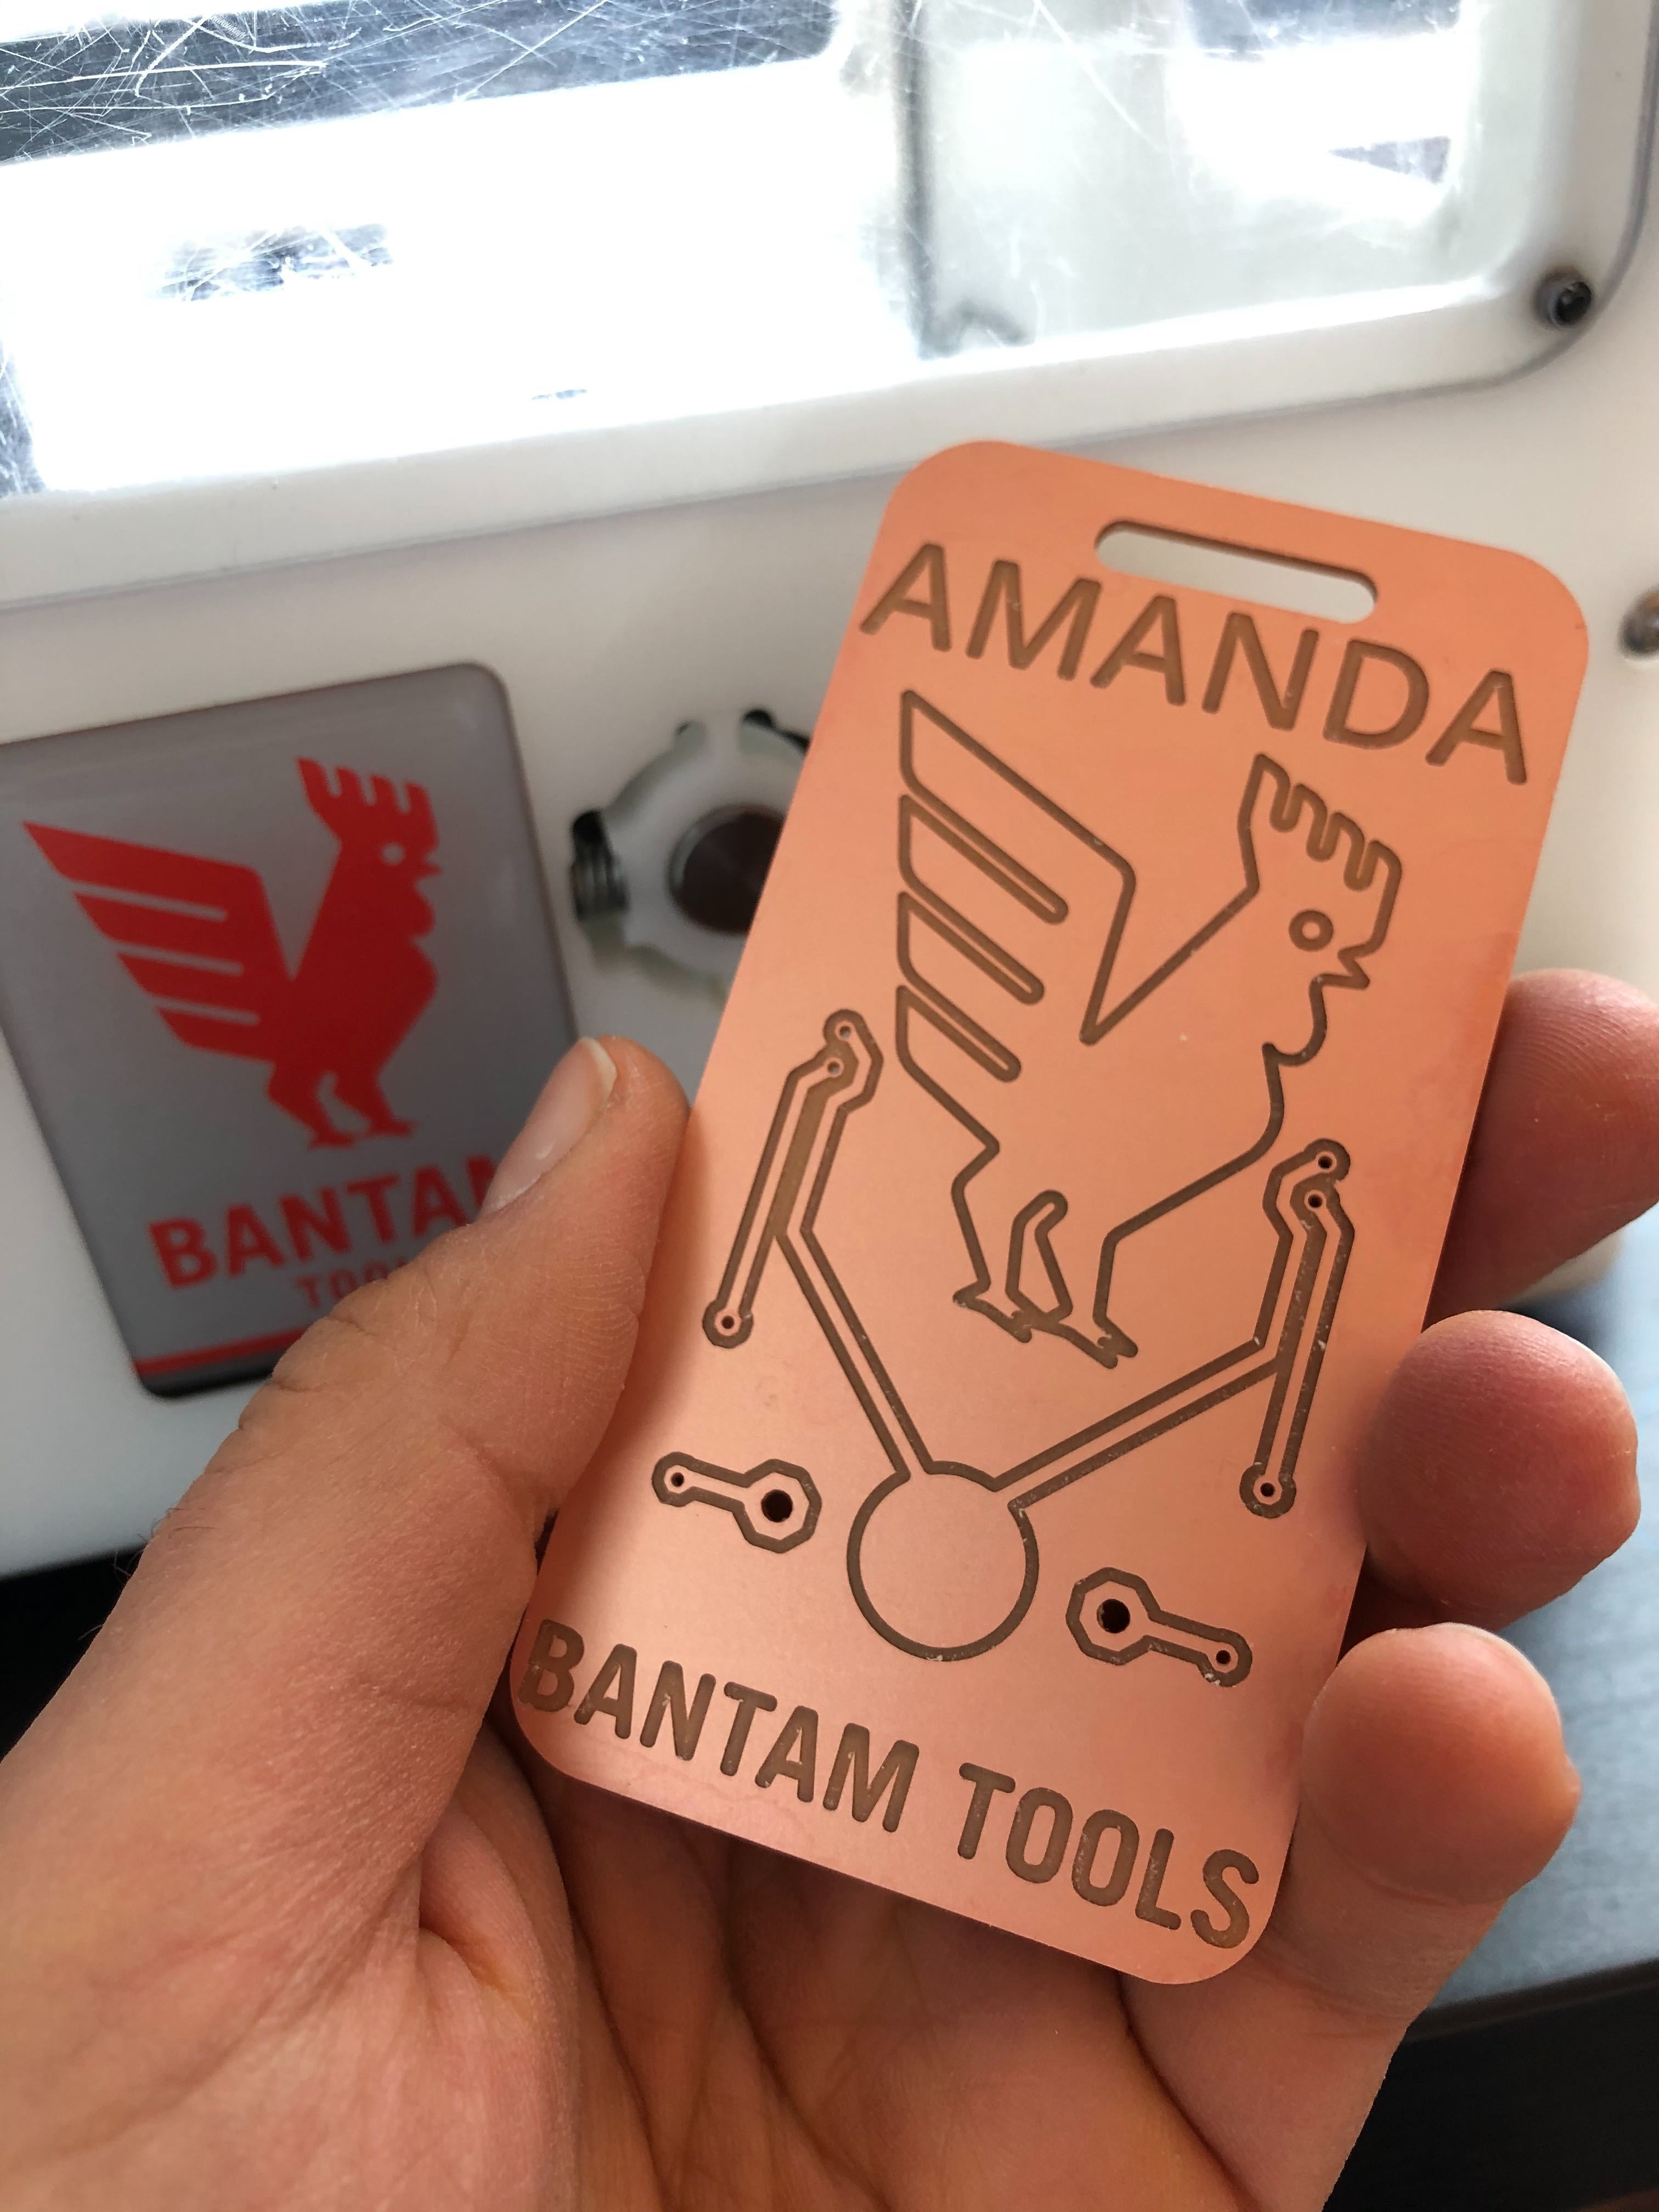 Finished-PCB-Badge-With-Name-Bantam-Tools.jpg